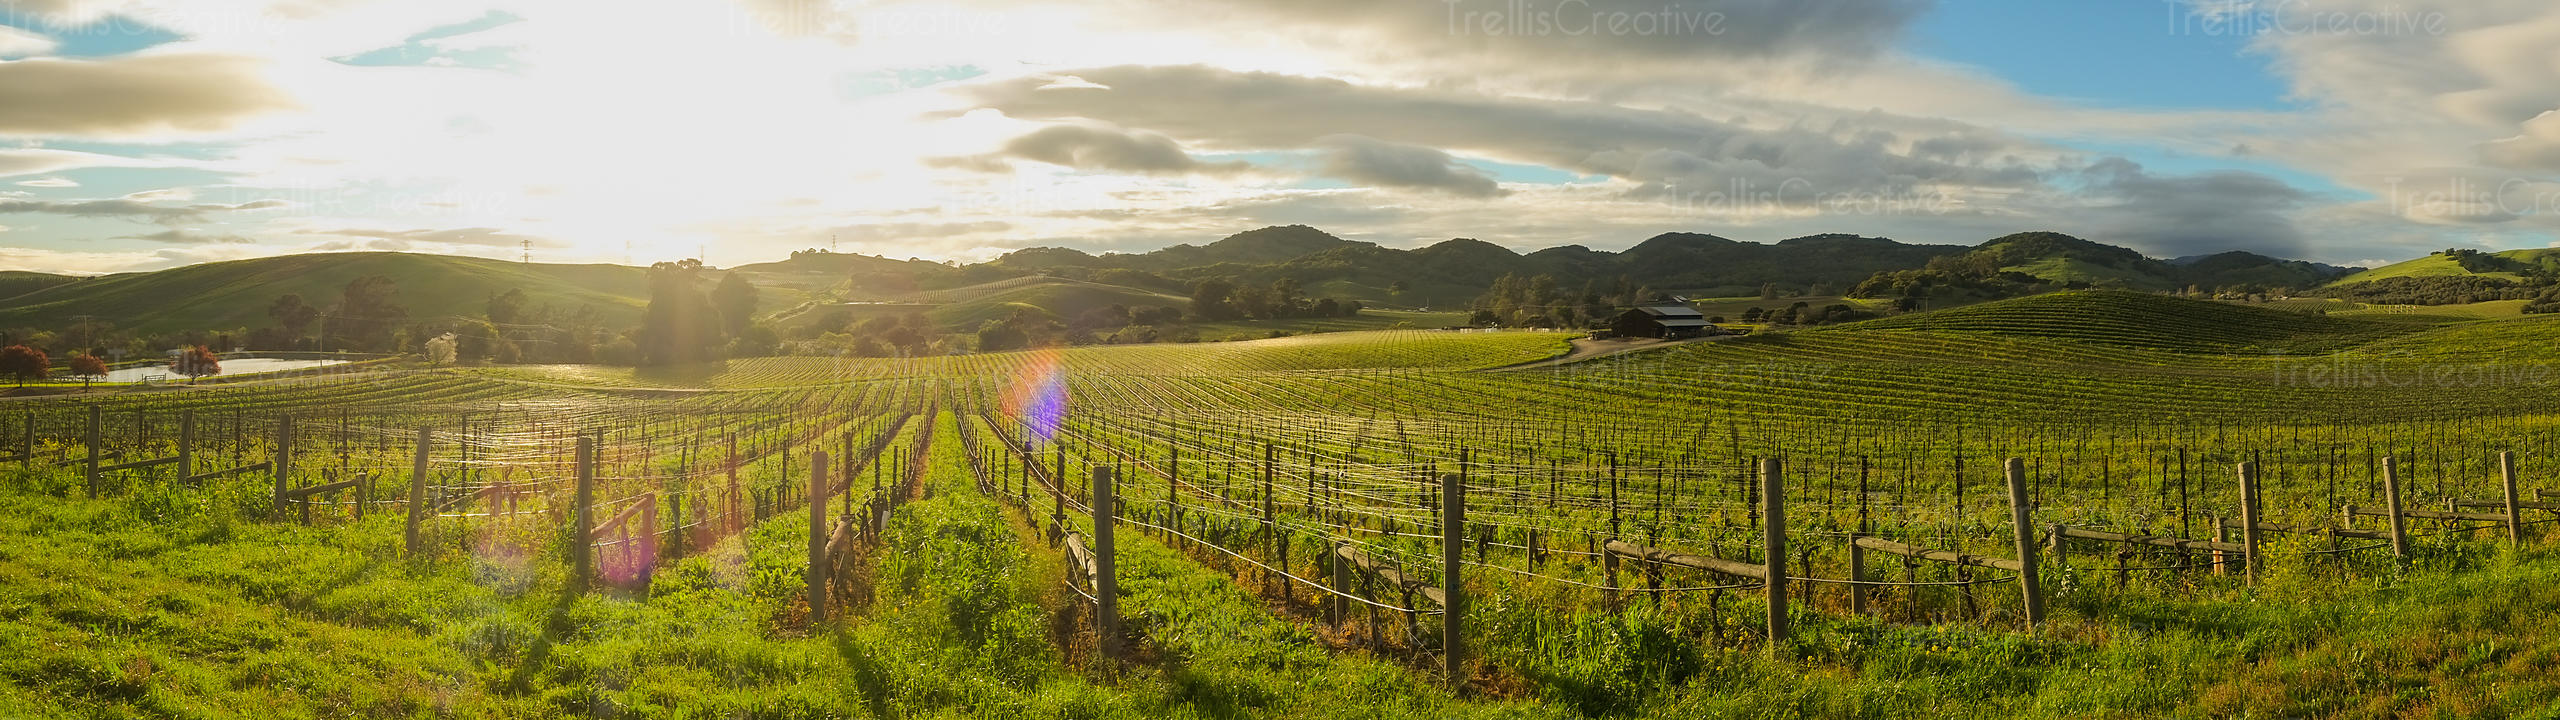 Panoramic shot of vineyards against a cloudy sky with sunlight filtering through